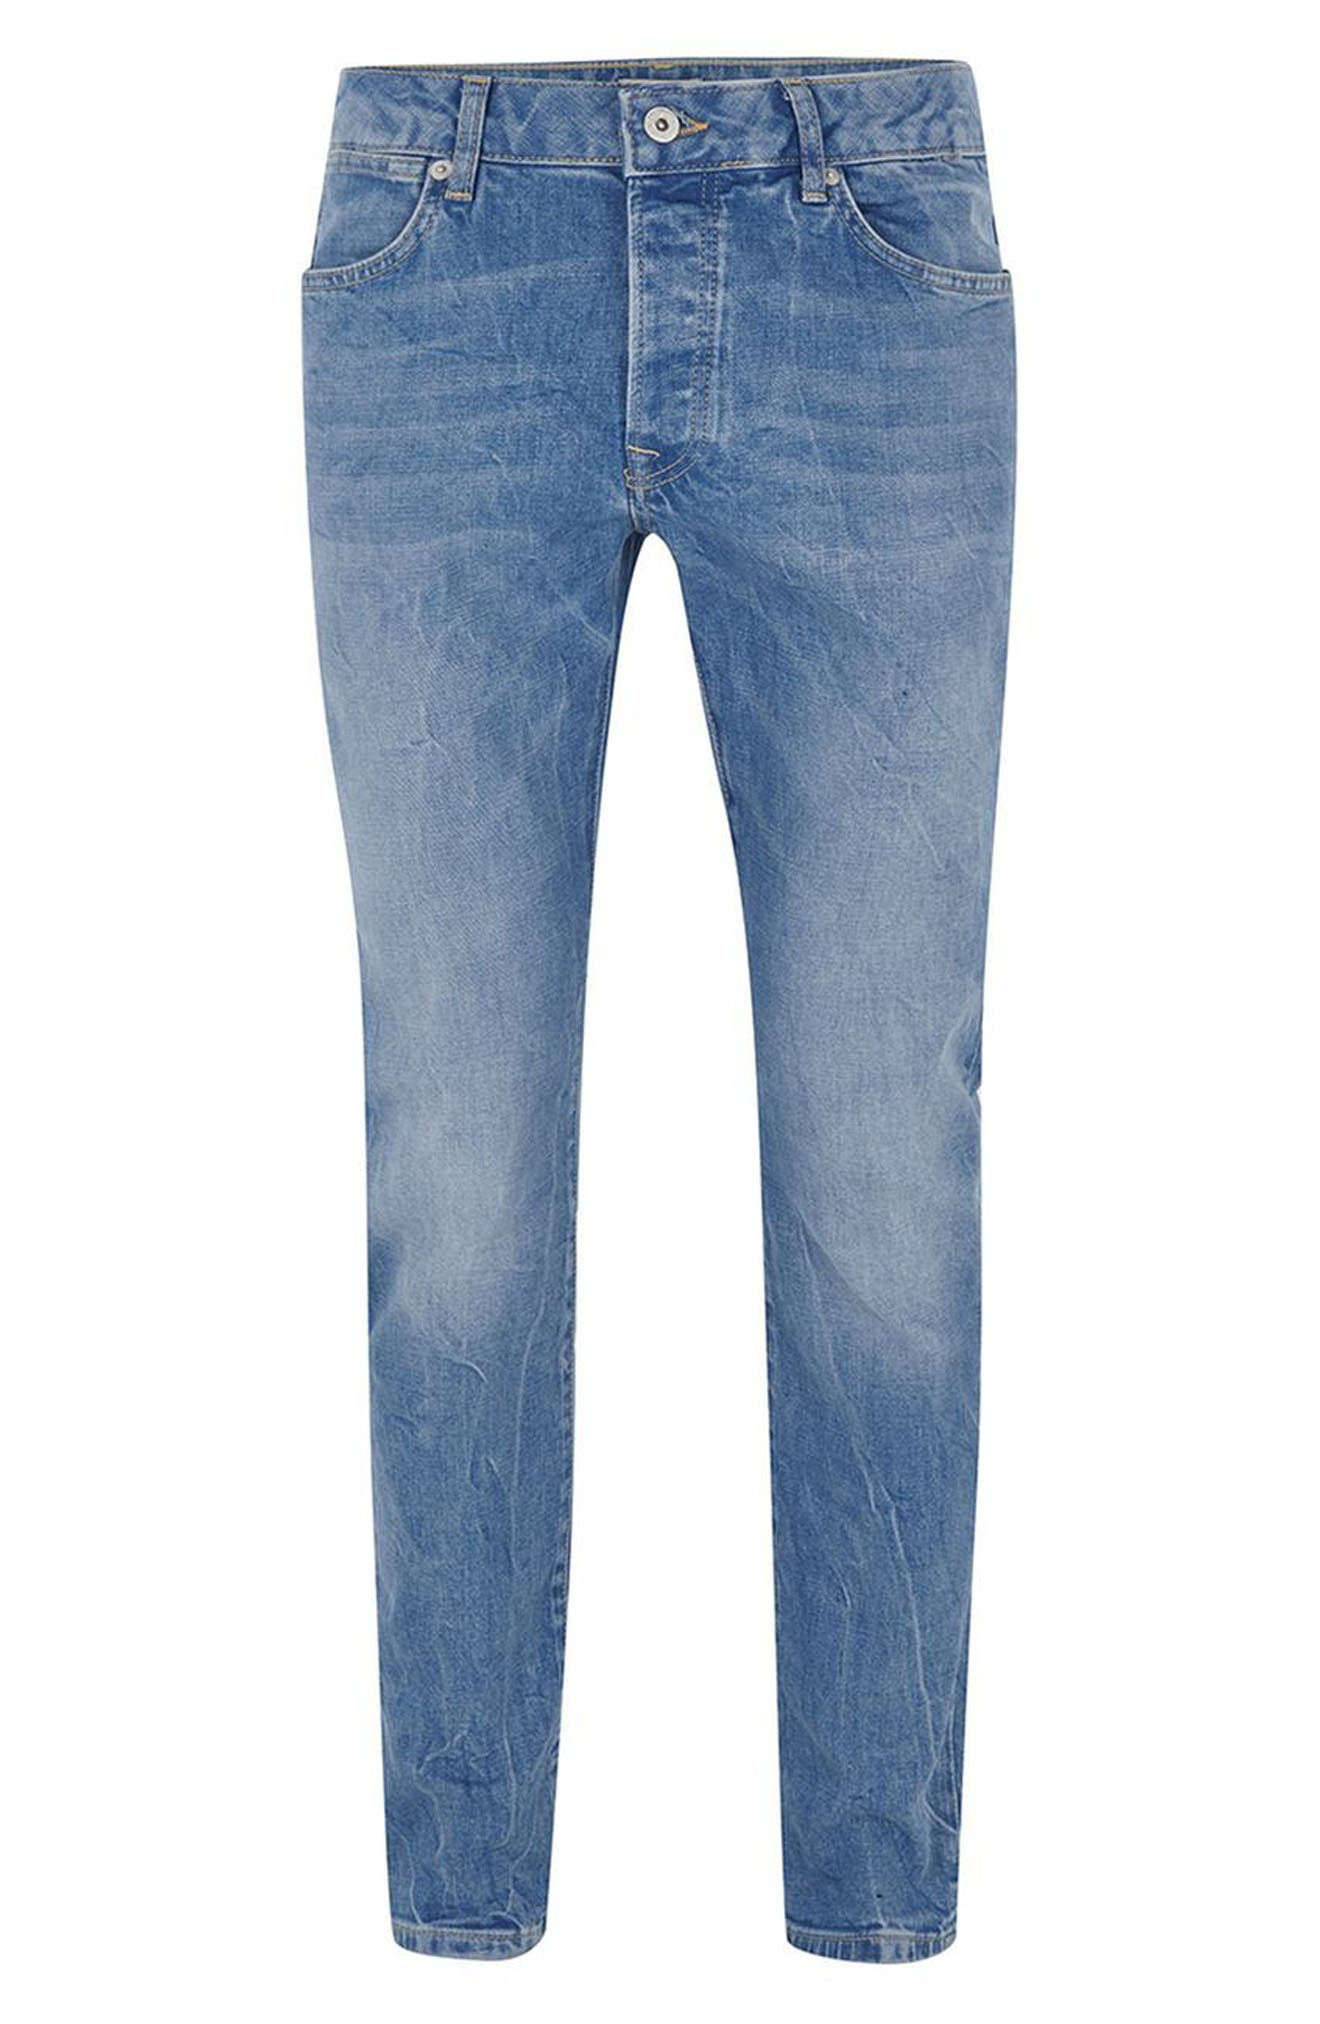 Stretch Slim Leg Jeans,                             Alternate thumbnail 4, color,                             Bright Blue